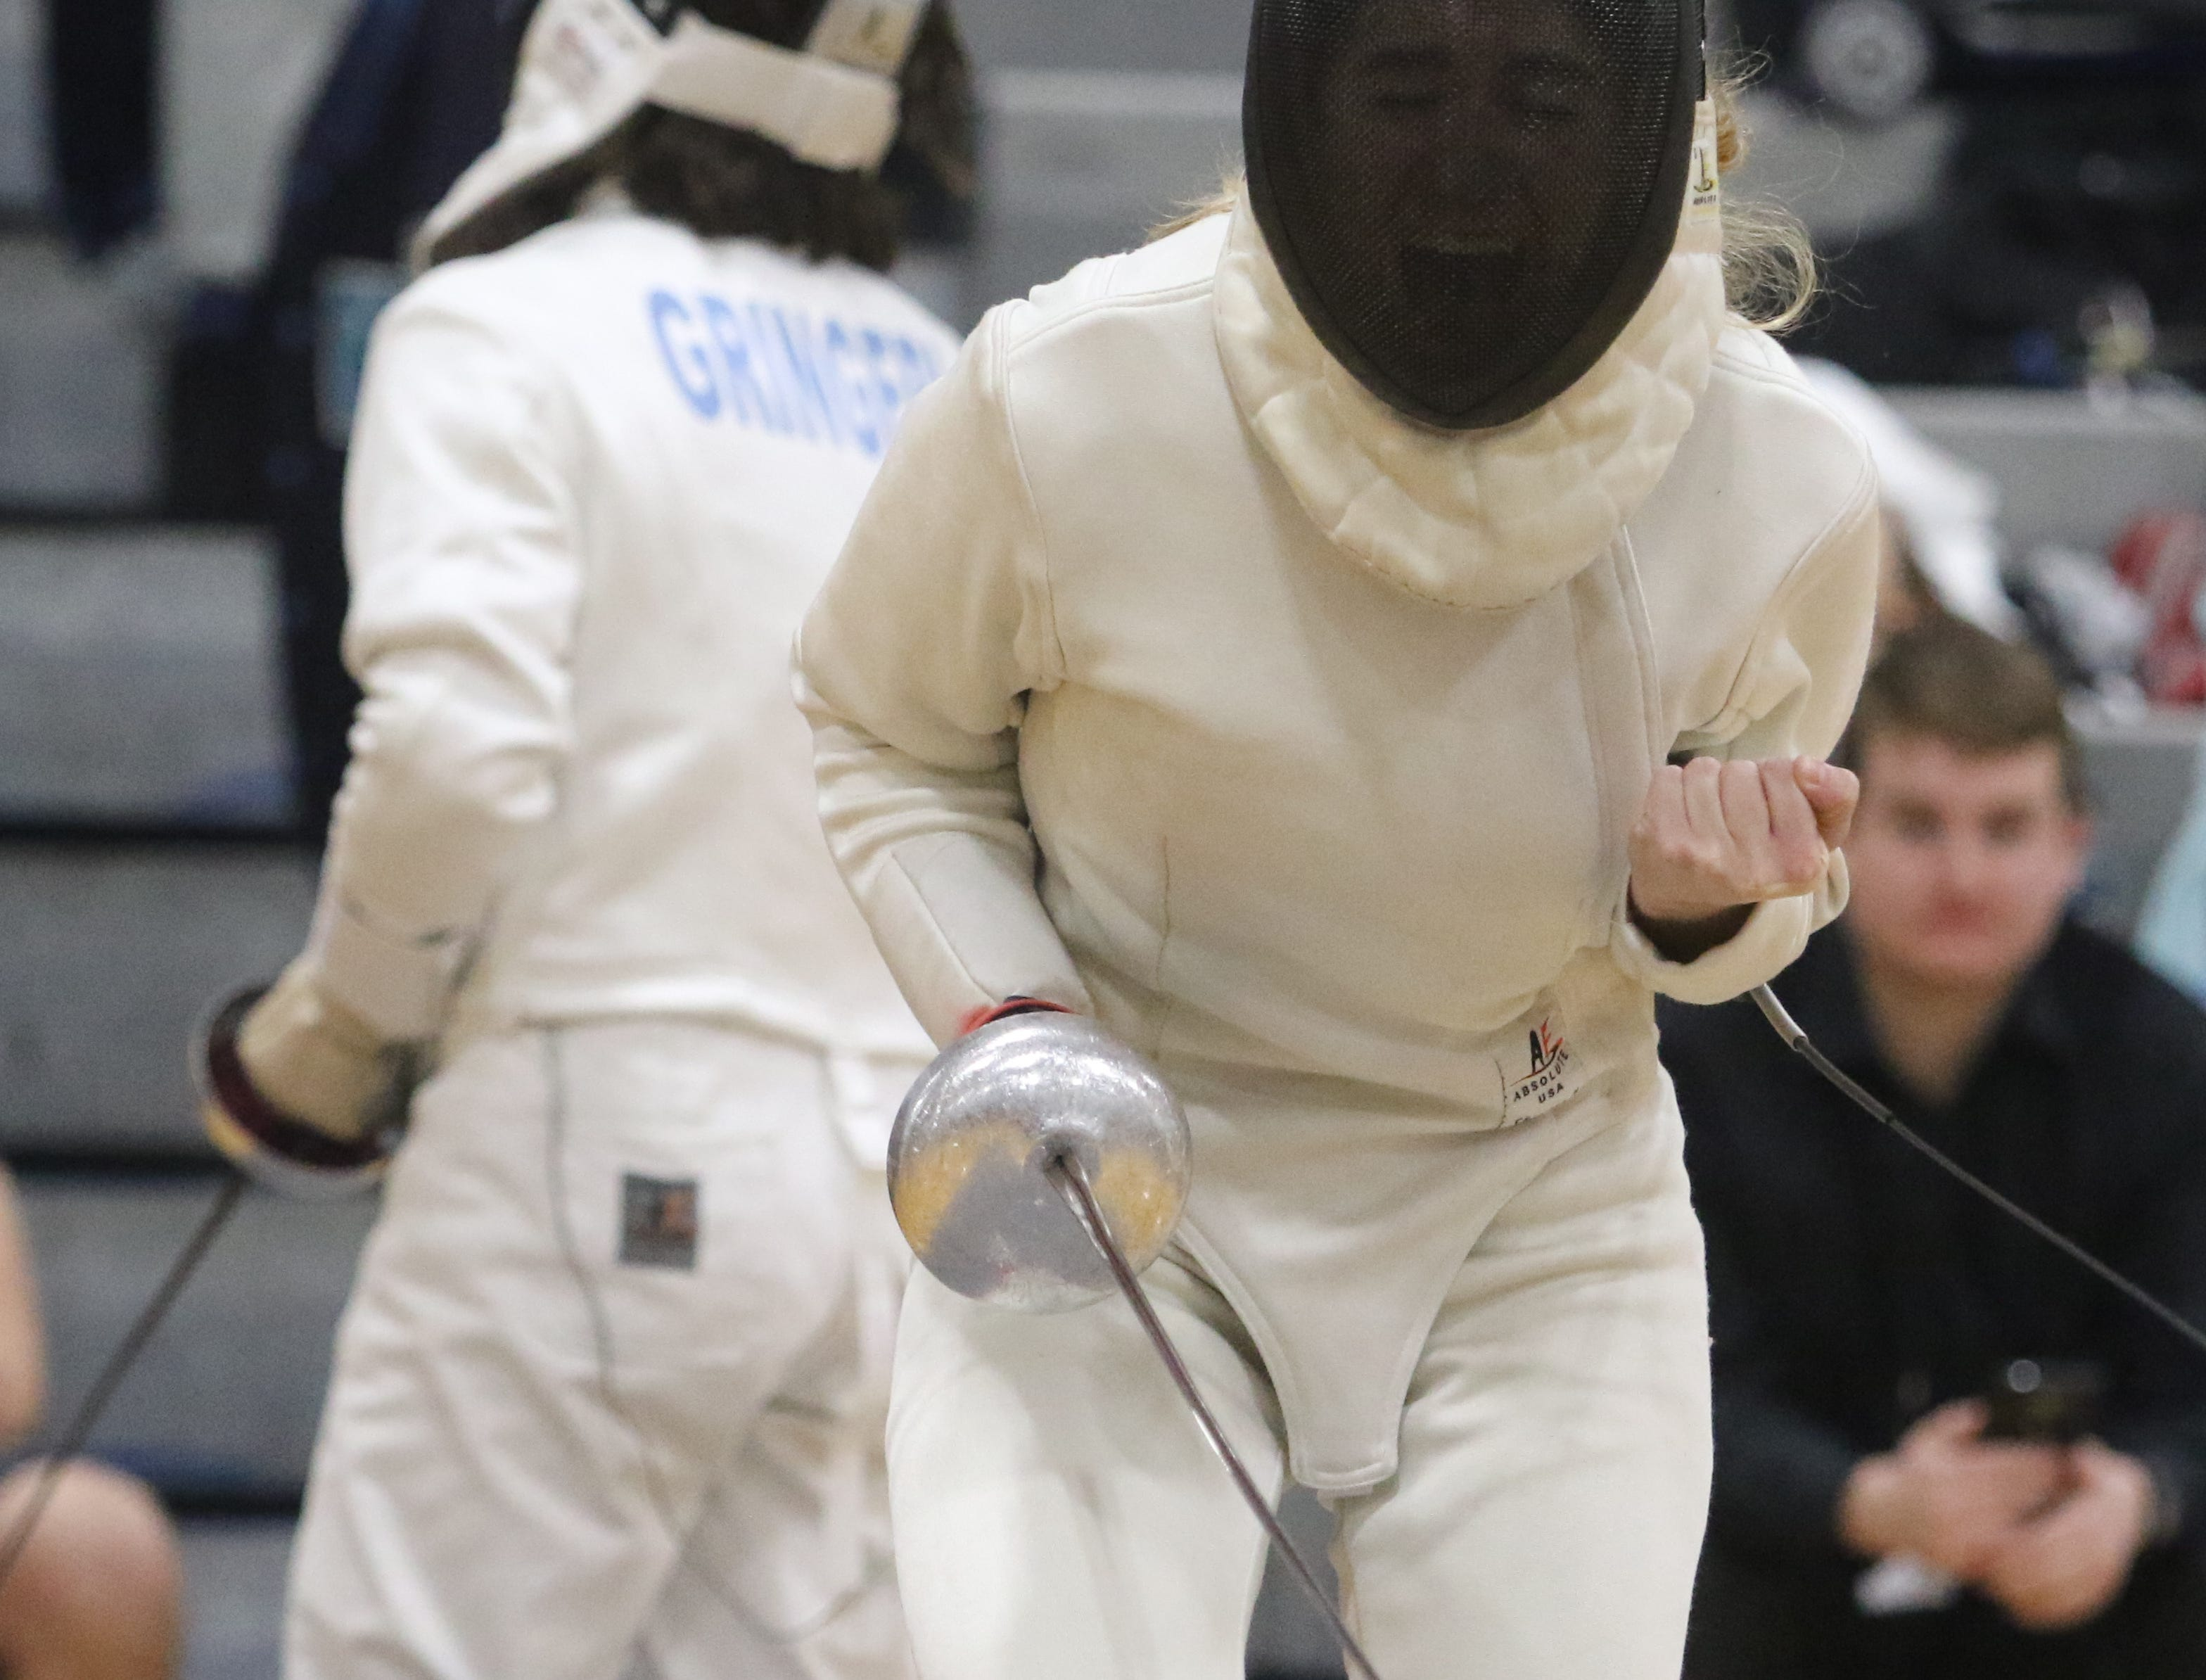 Alexandra Szwec of Morris Hills celebrates a point against Abby Gringeri of Morristown in the epee final.